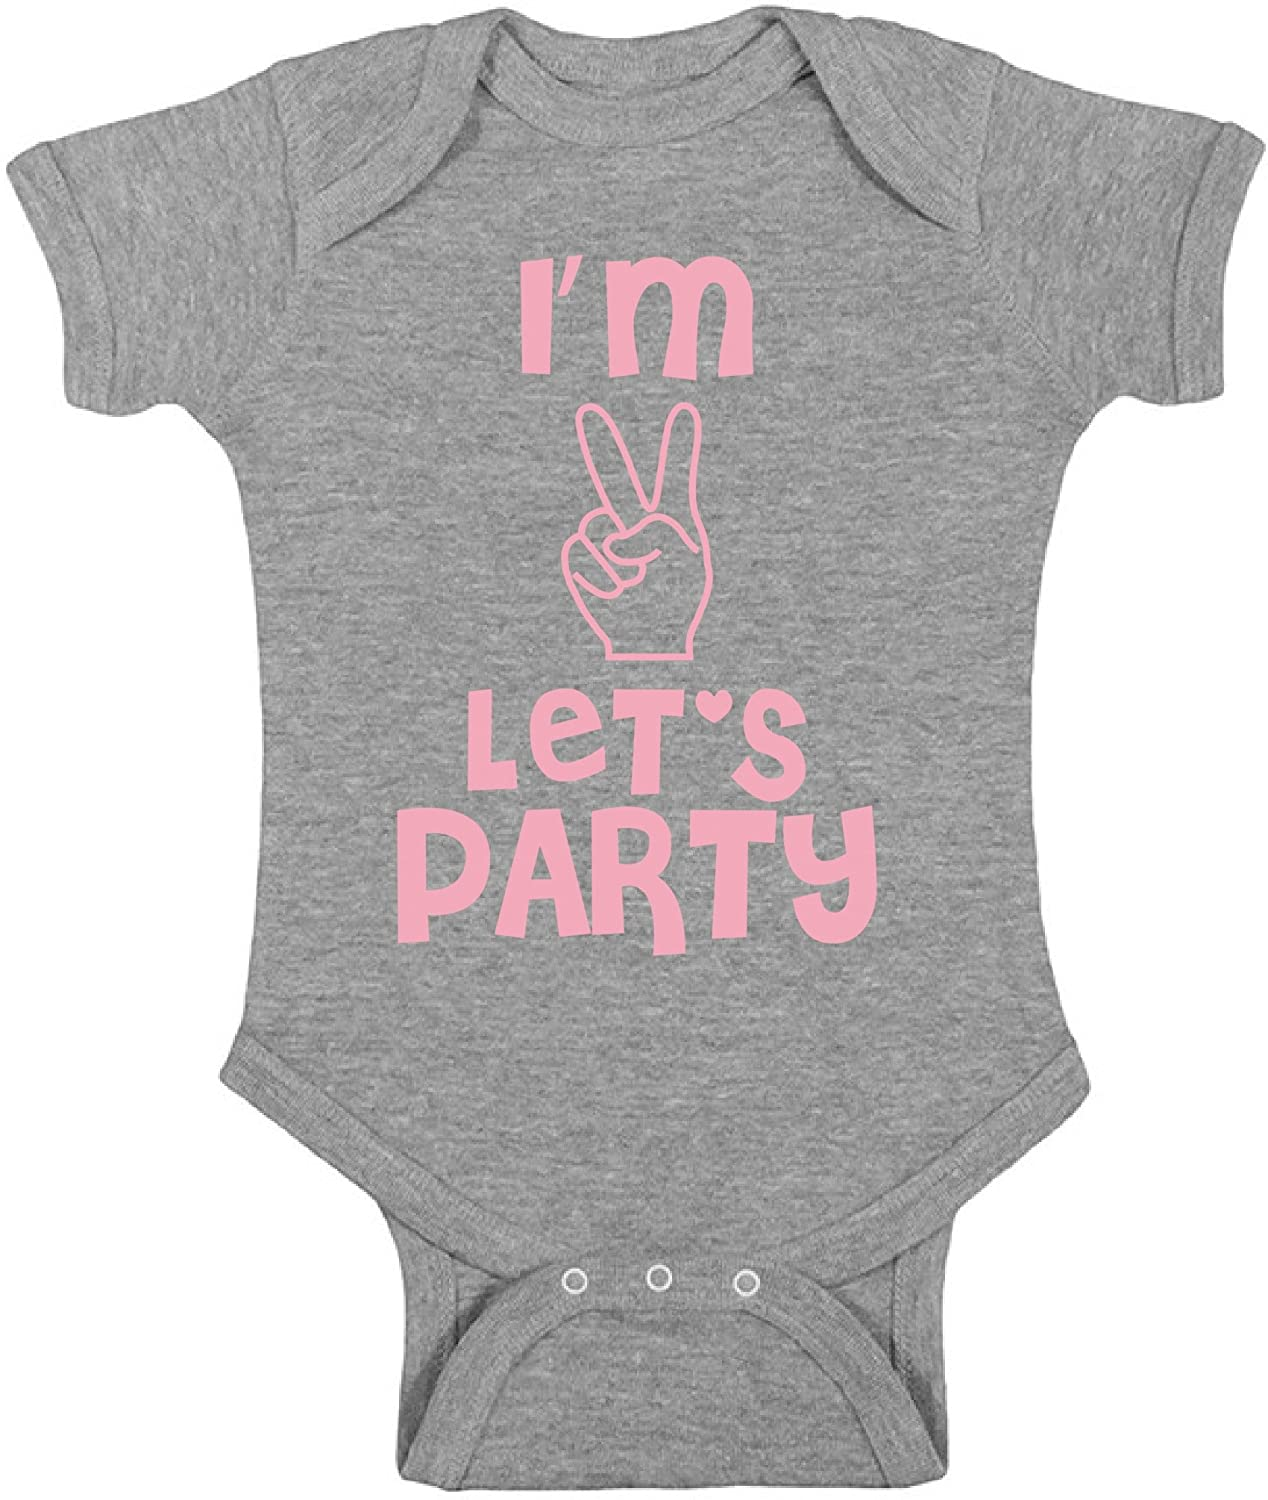 Awkward Styles Baby Im Two Lets Party Boy Girl Short Sleeve Bodysuits Tops Birthday Party of Two Year Old